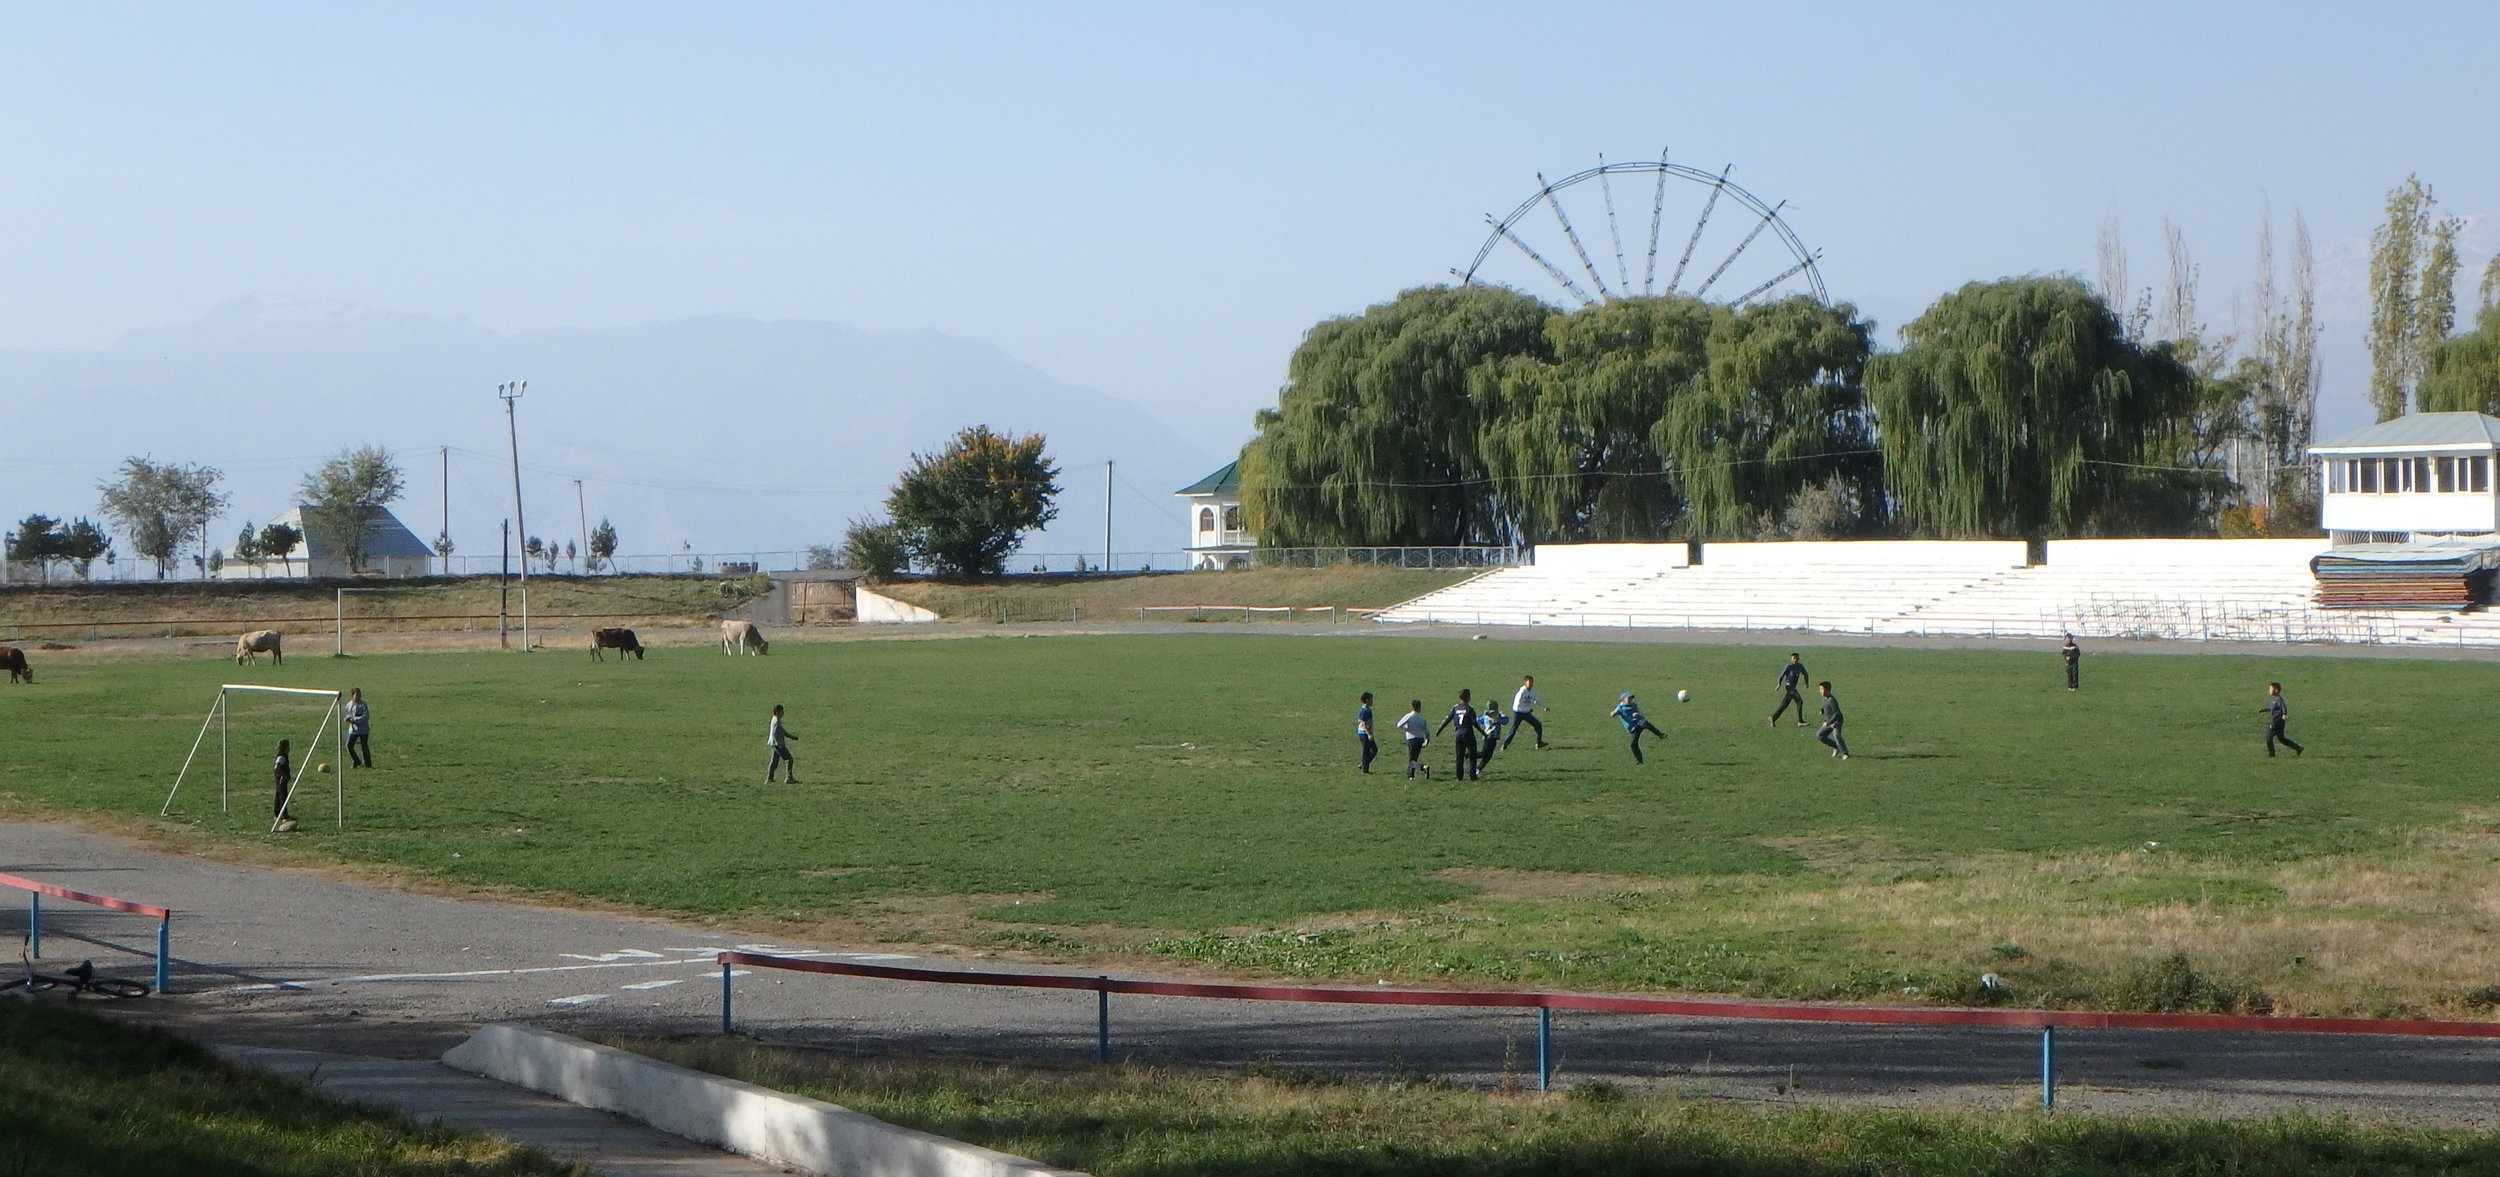 Sharing the playing field, Toktugul.